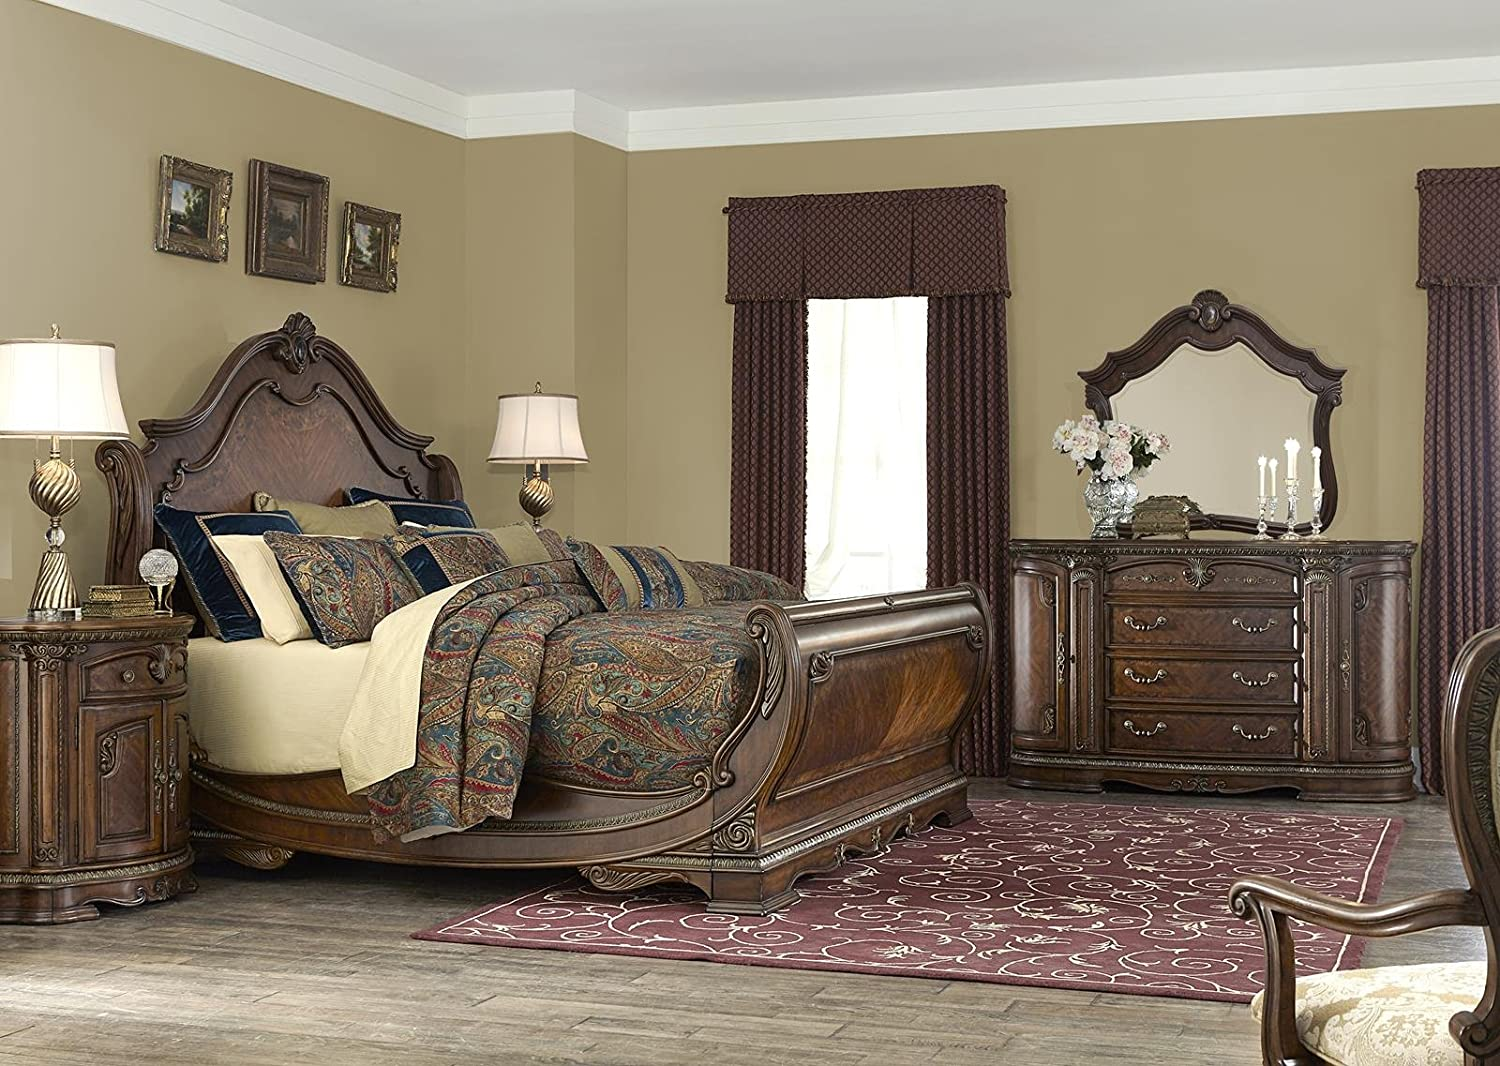 Amazon.com: AICO Bella Veneto Bedroom Set With King Bed, Nightstand,  Dresser And Mirror: Kitchen U0026 Dining